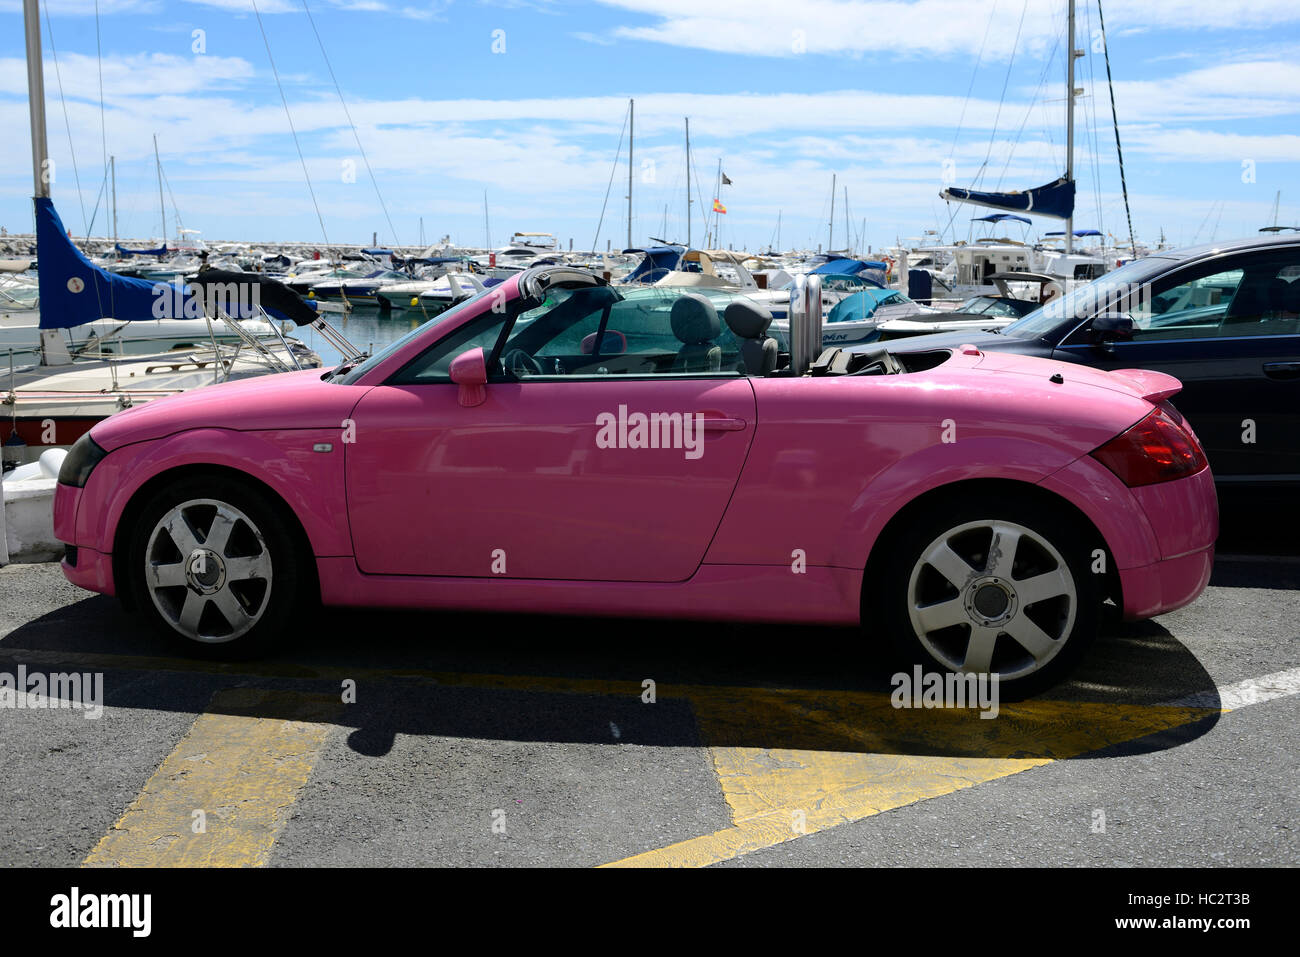 Pink Audi Tt Roadster Open Top Soft Top Convertible Car Auto Puerto